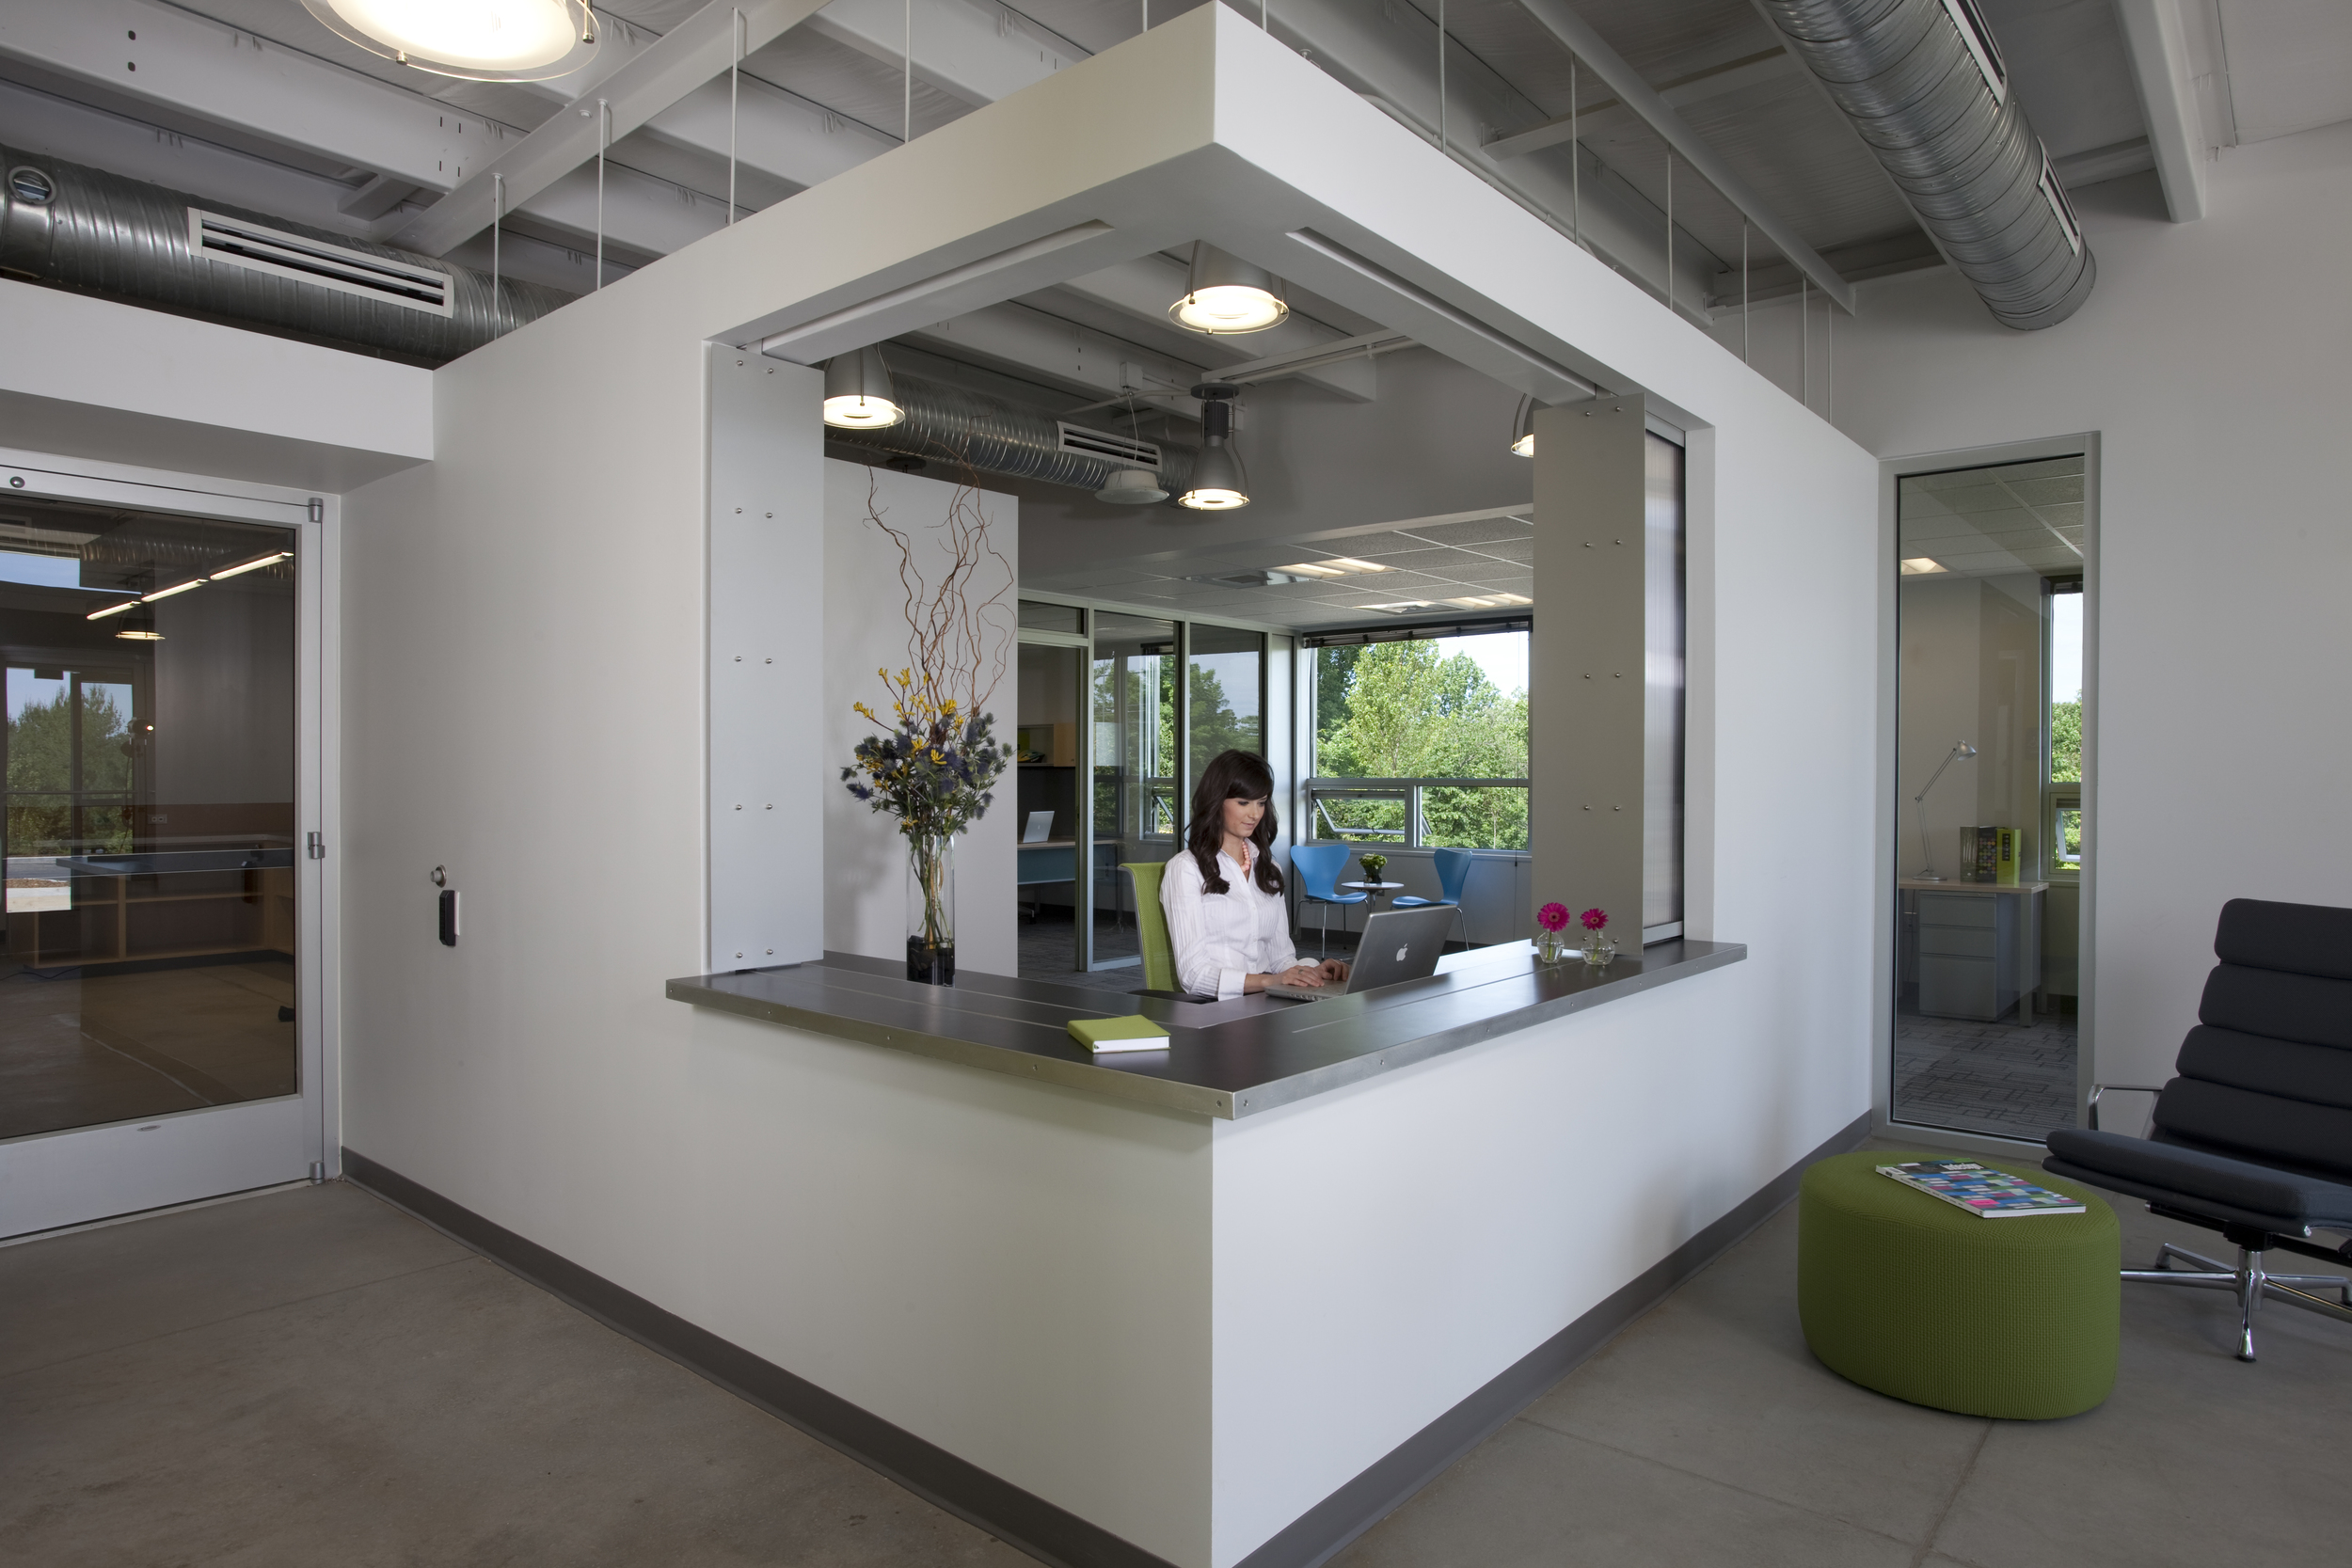 Inside, simple materials enliven the exposed structure of the pre-engineered metal building.